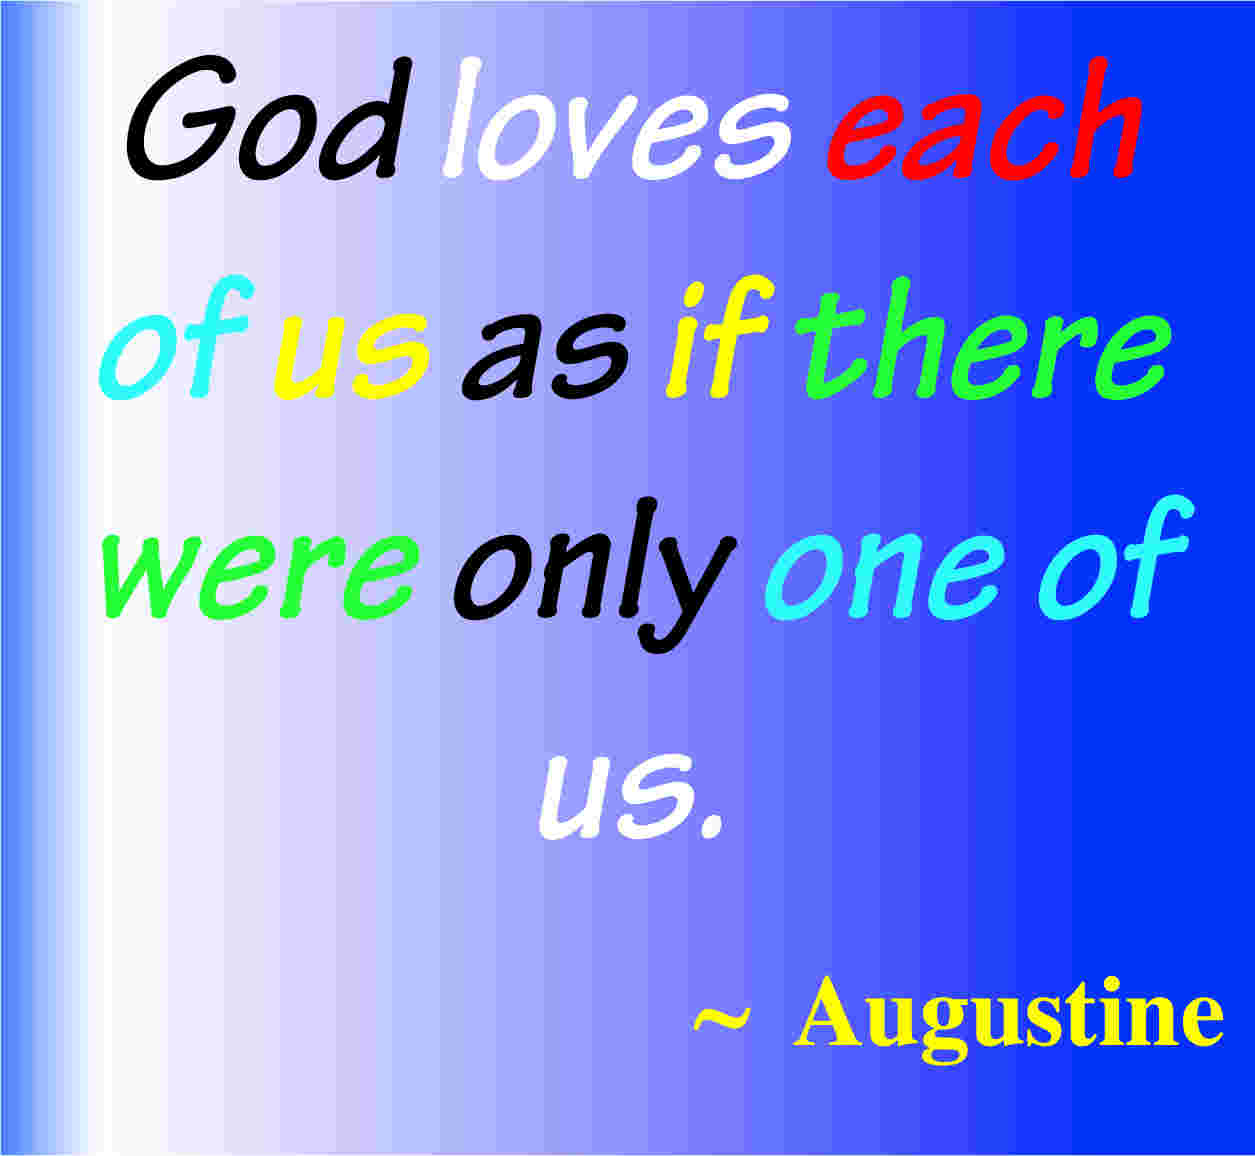 Love Quotes For Us 20 Inspirational Bible Verses About God's Love